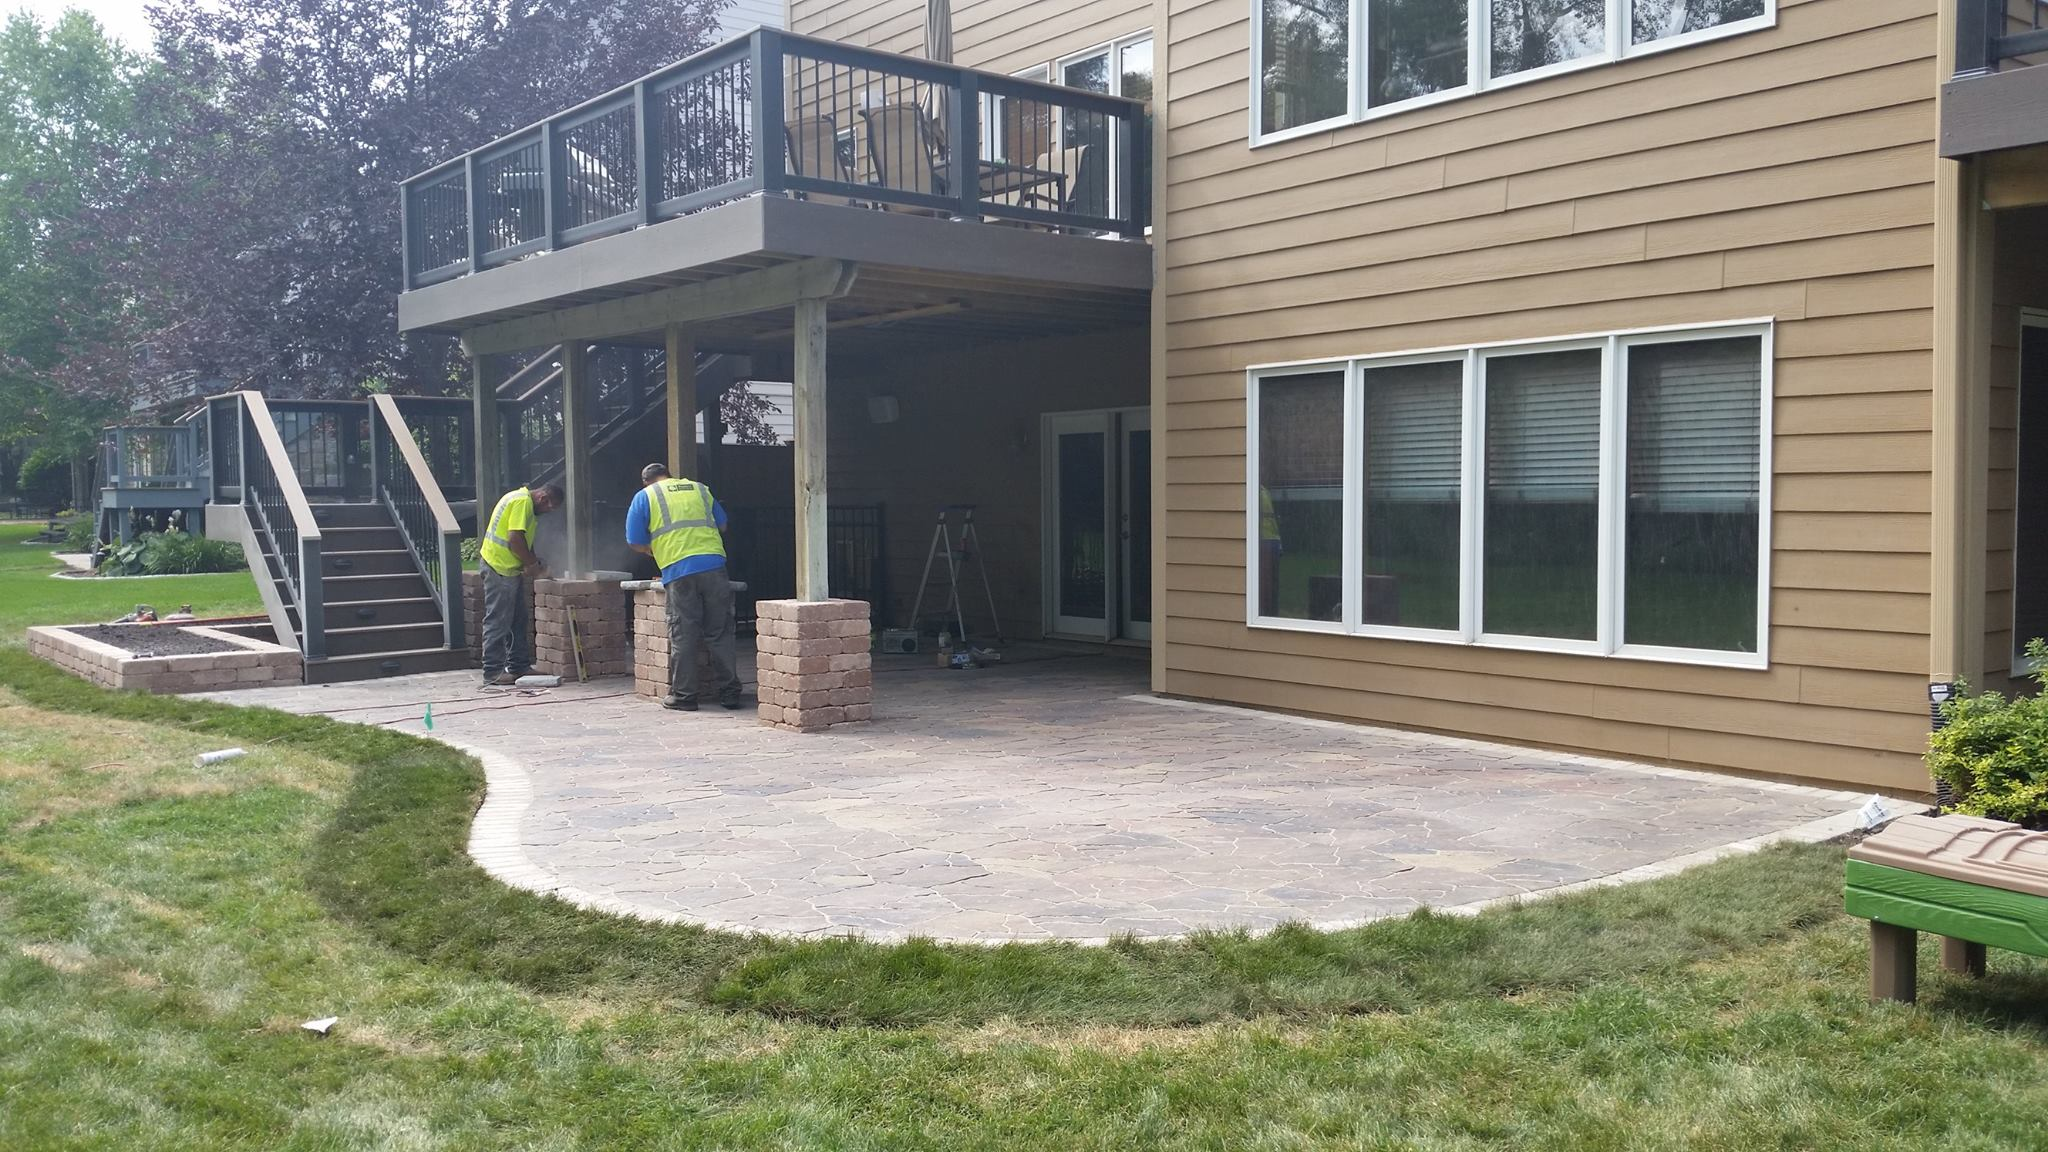 Double Decks Under Deck System And New Stone Patio Des Moines Builder Drive Solutions